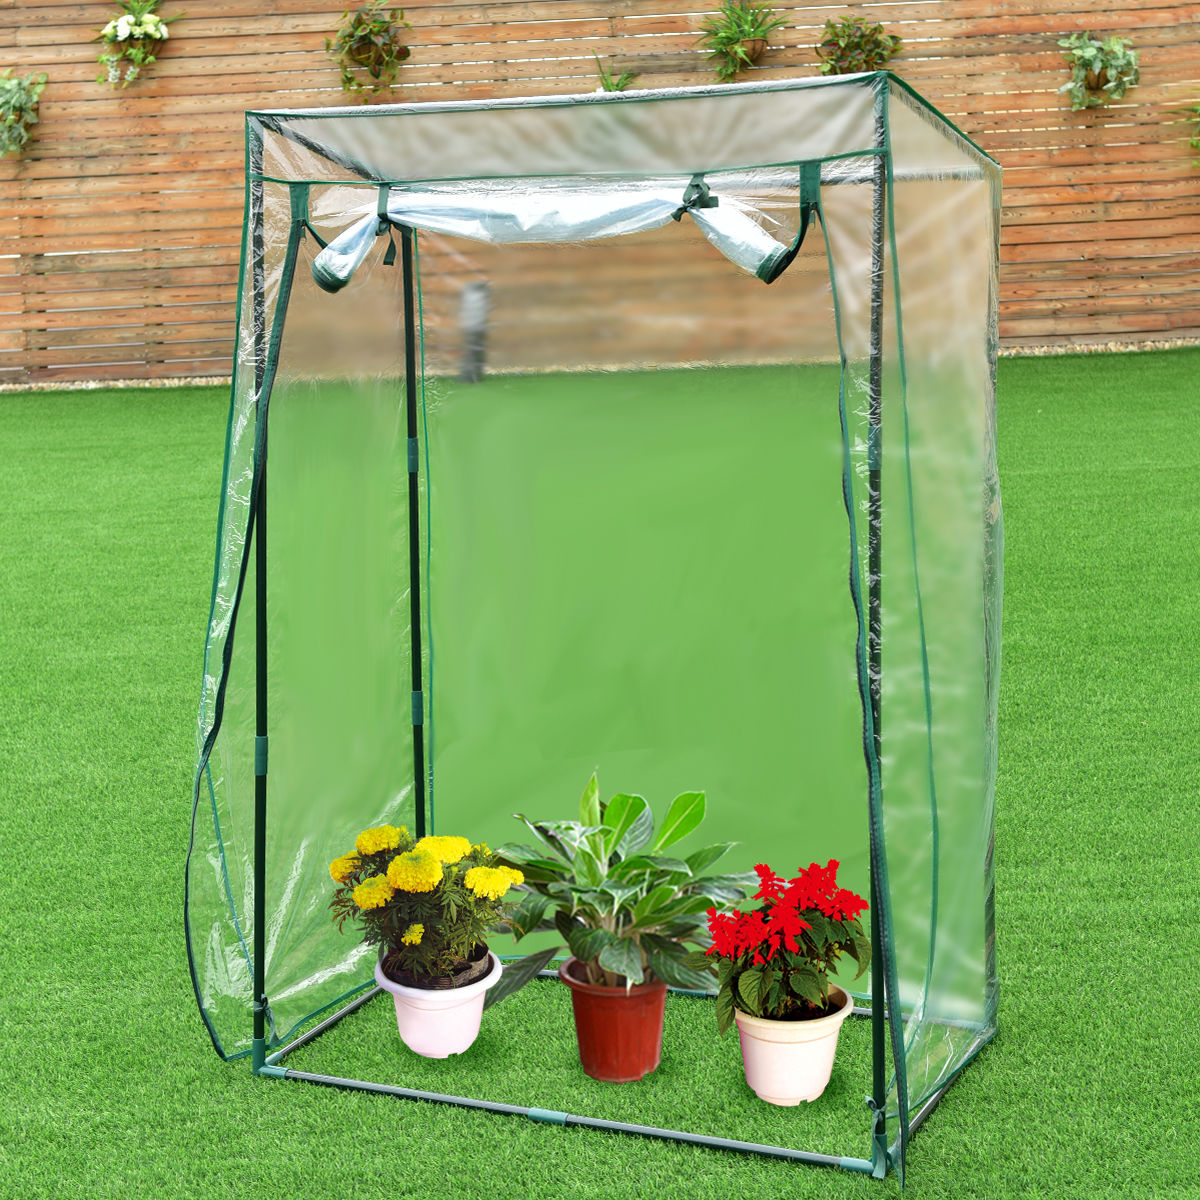 Costway 40''x20''x59'' Garden Greenhouse Grow House Plant Vegetable Growbag W/PVC Cover